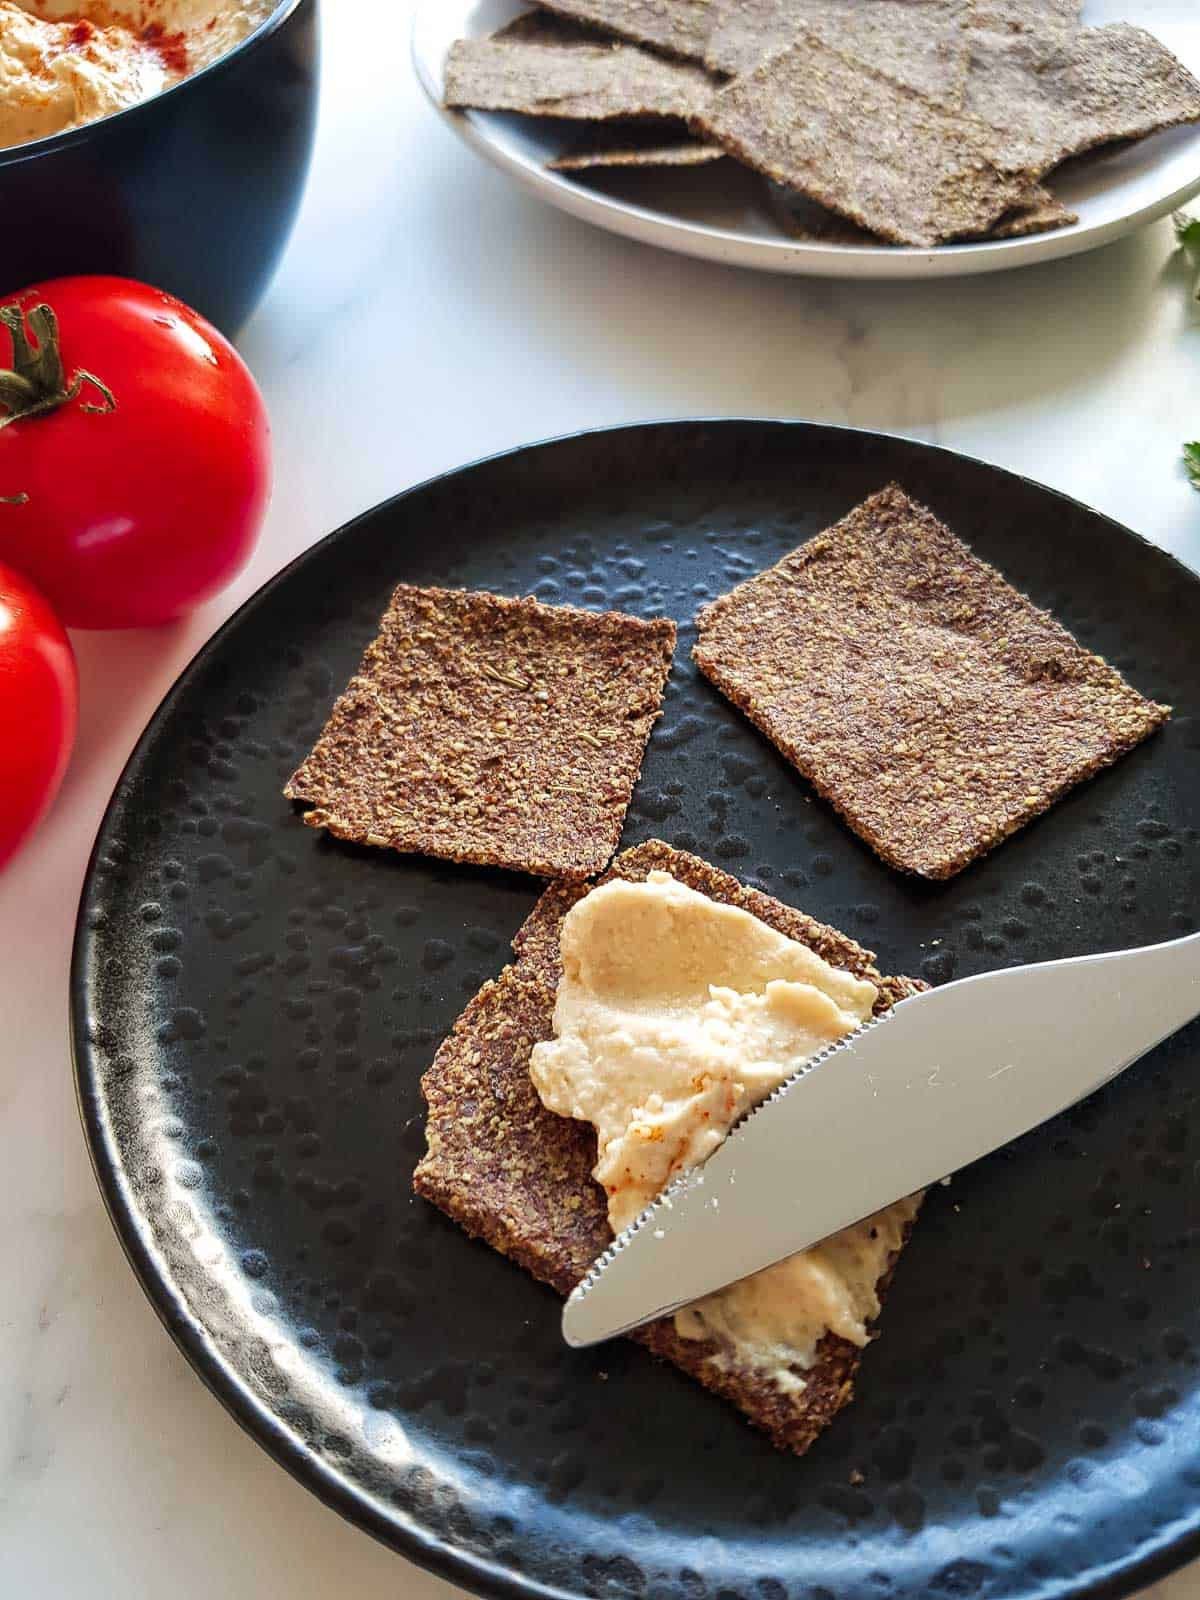 A knife spreading hummus onto a flax seed cracker.